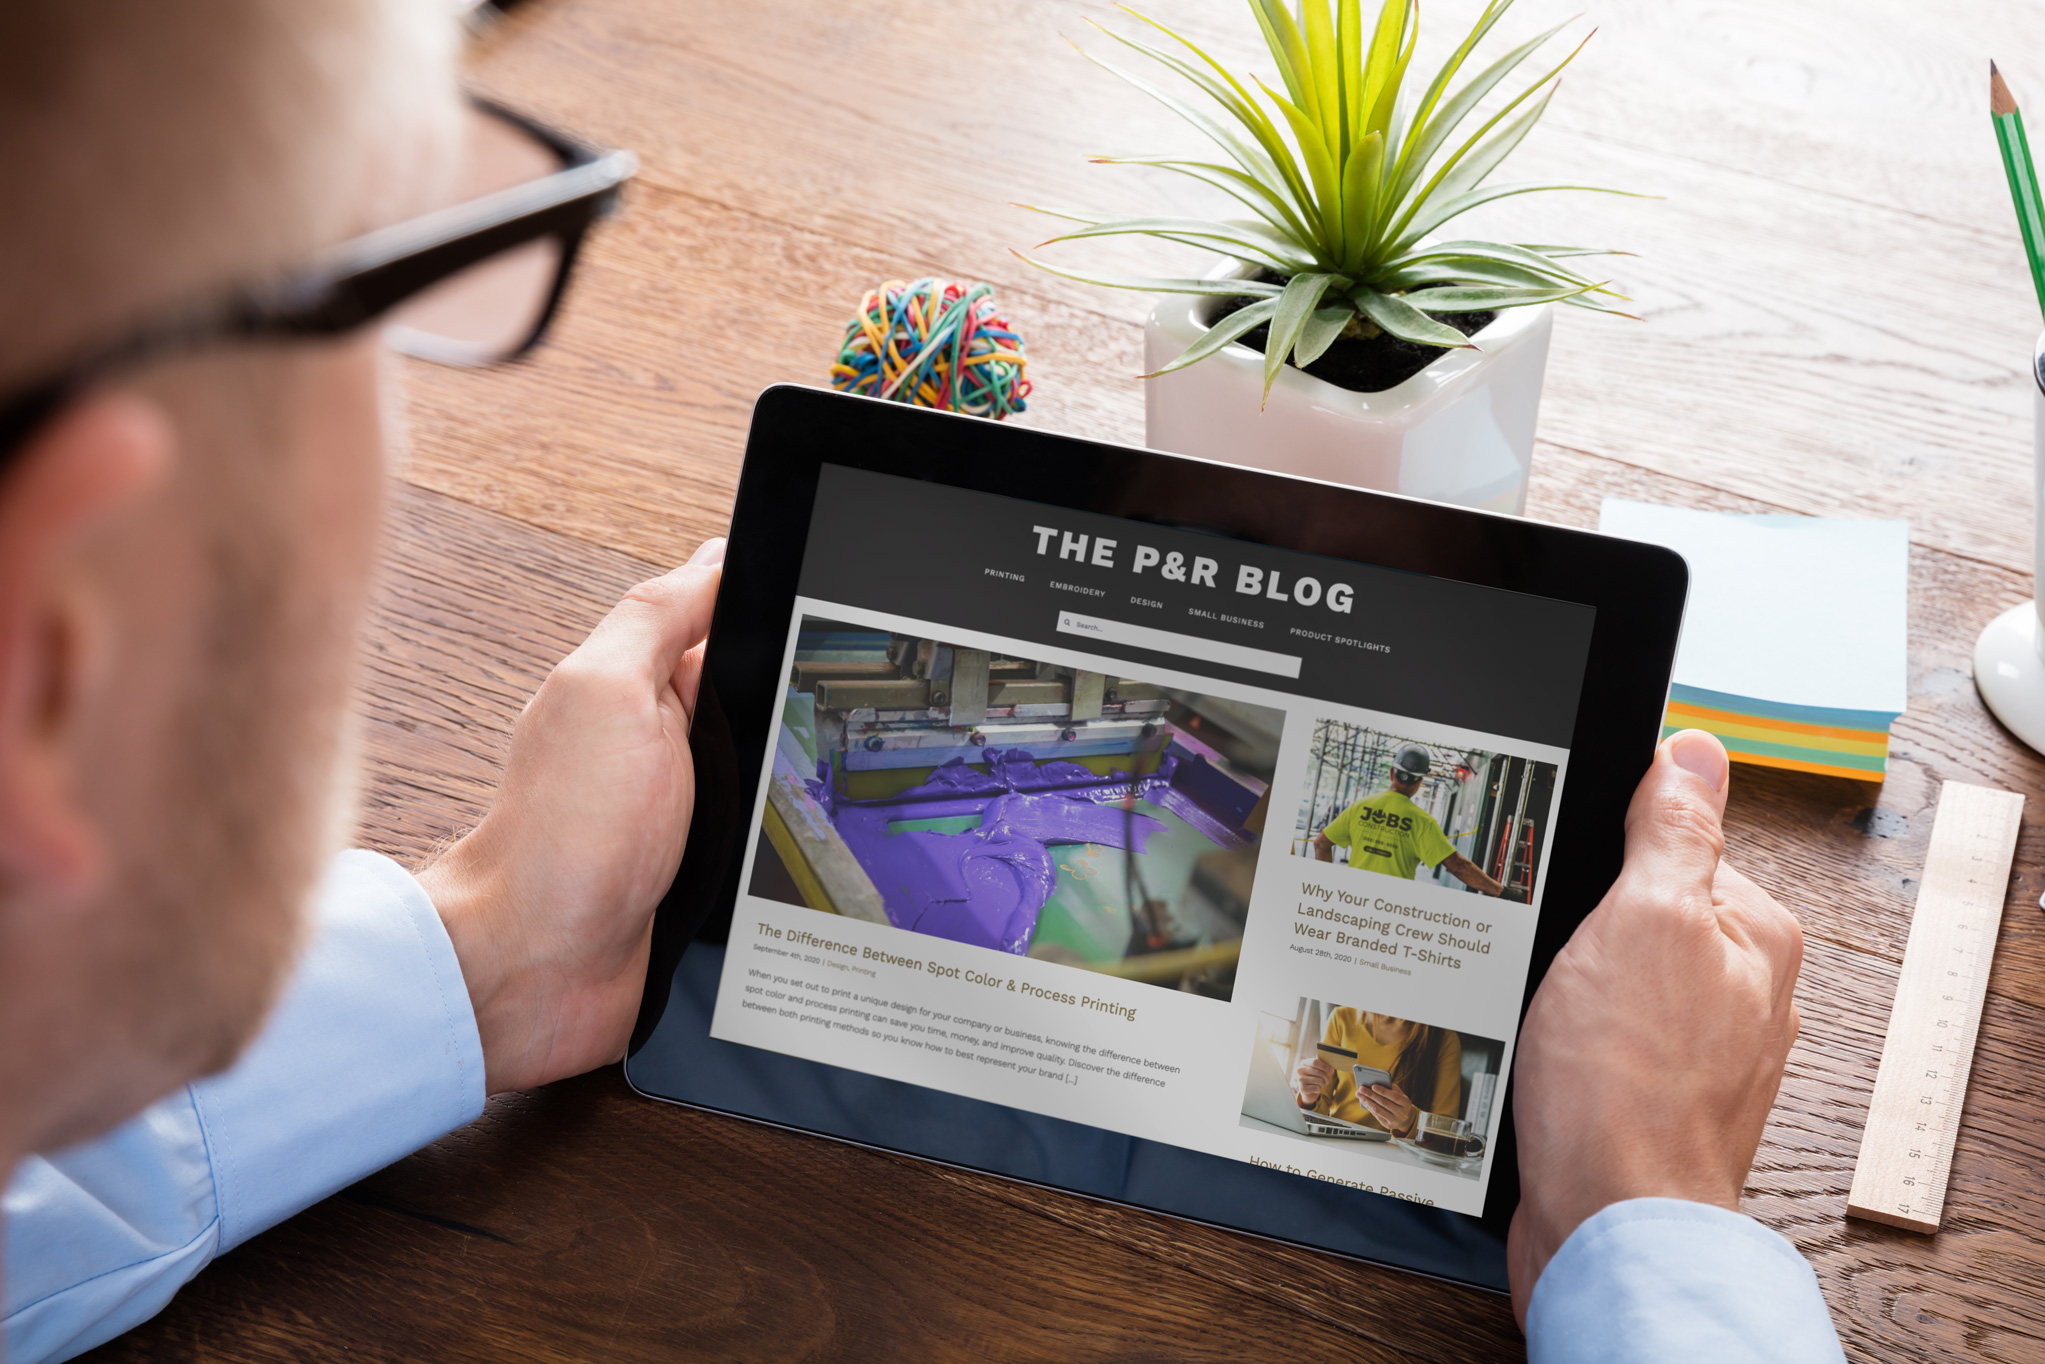 The P&R Blog on Tablet